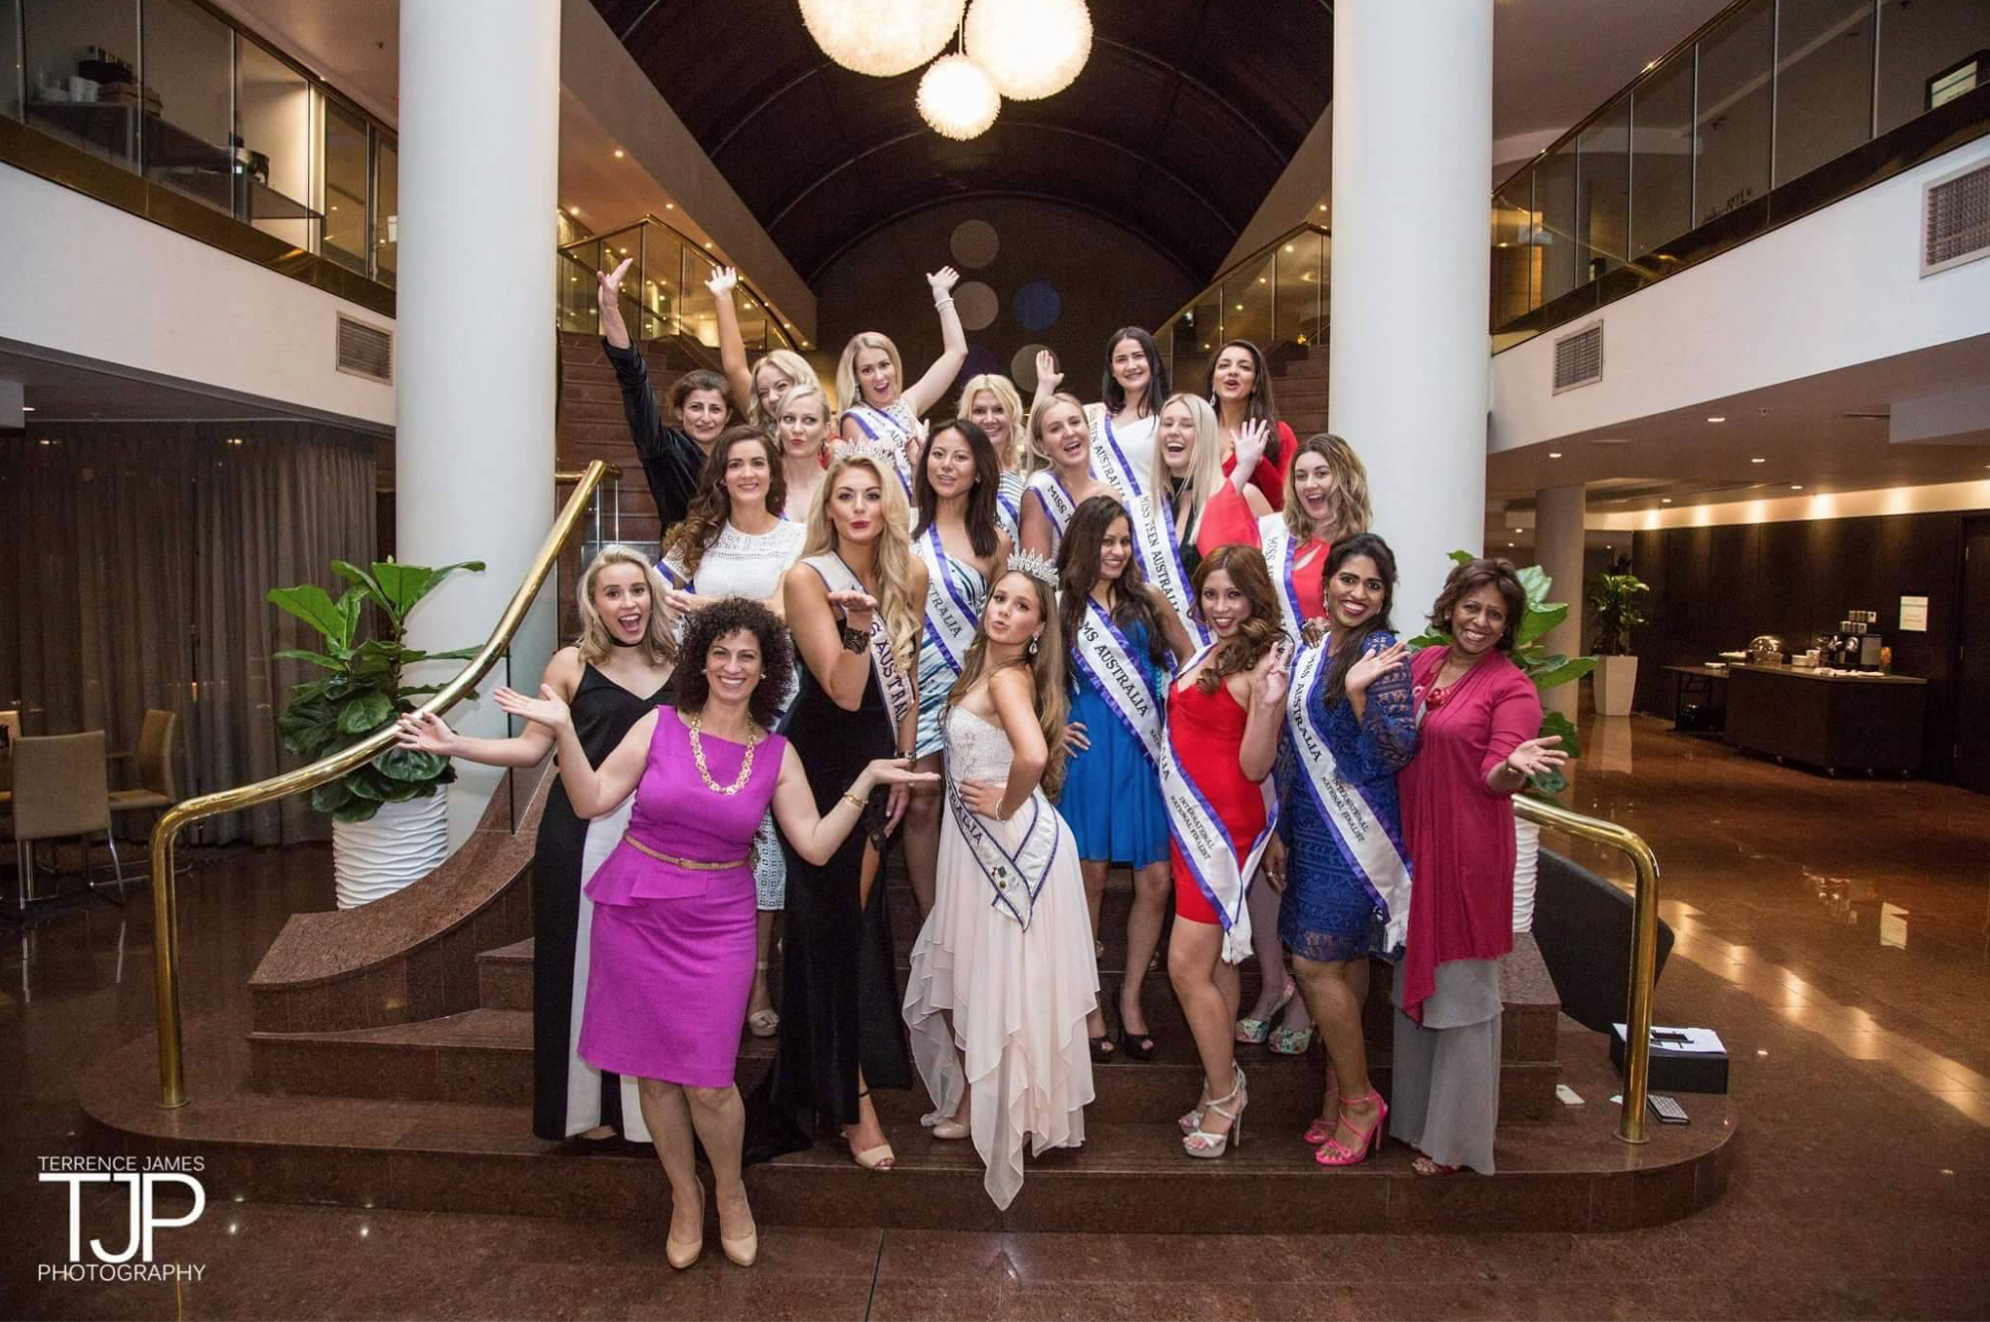 2016 Title holders & 2017 finalists